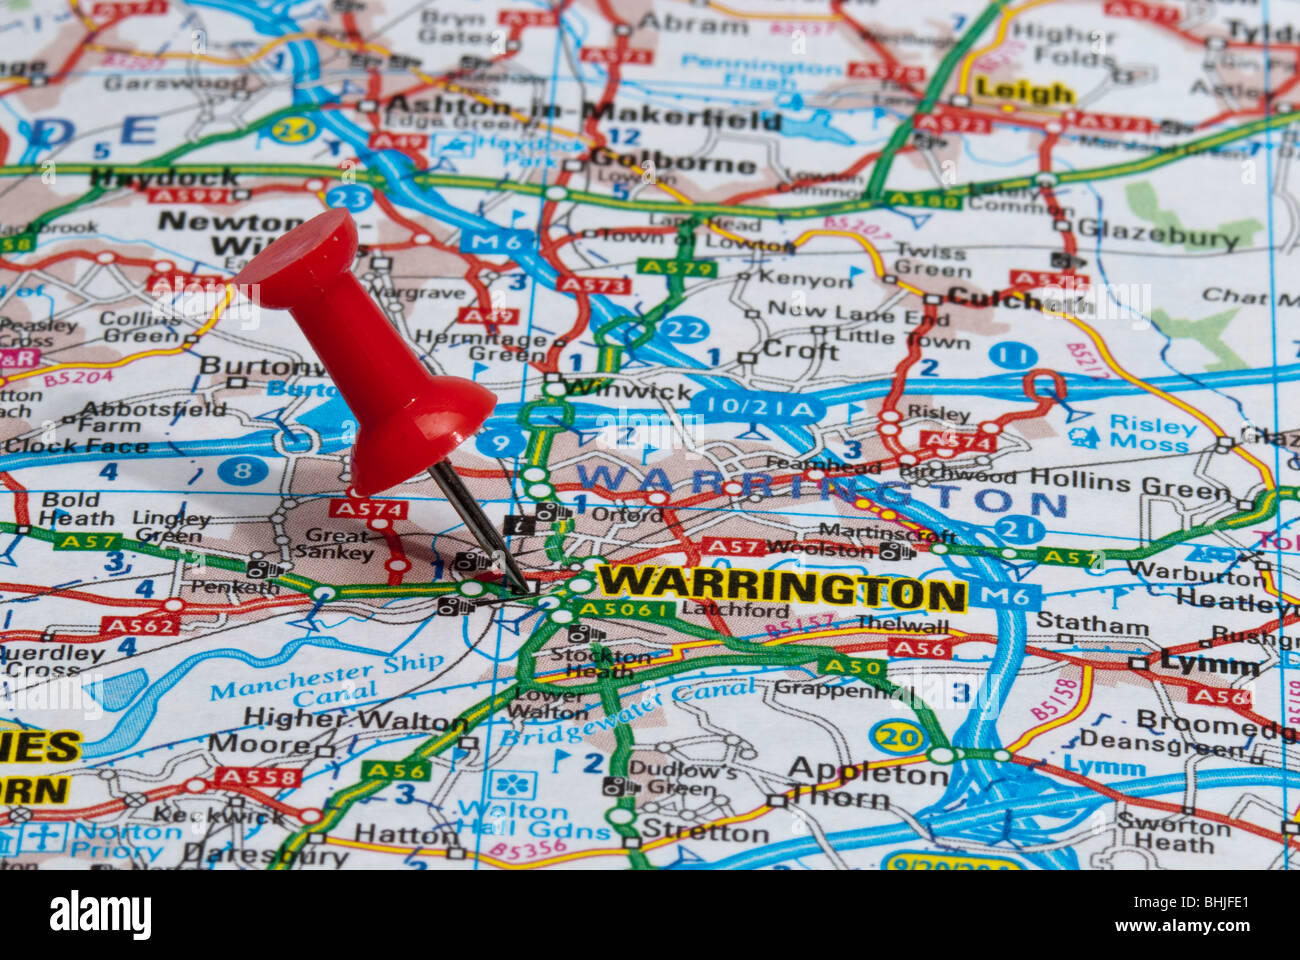 red map pin in road map pointing to city of Warrington Stock Photo ...